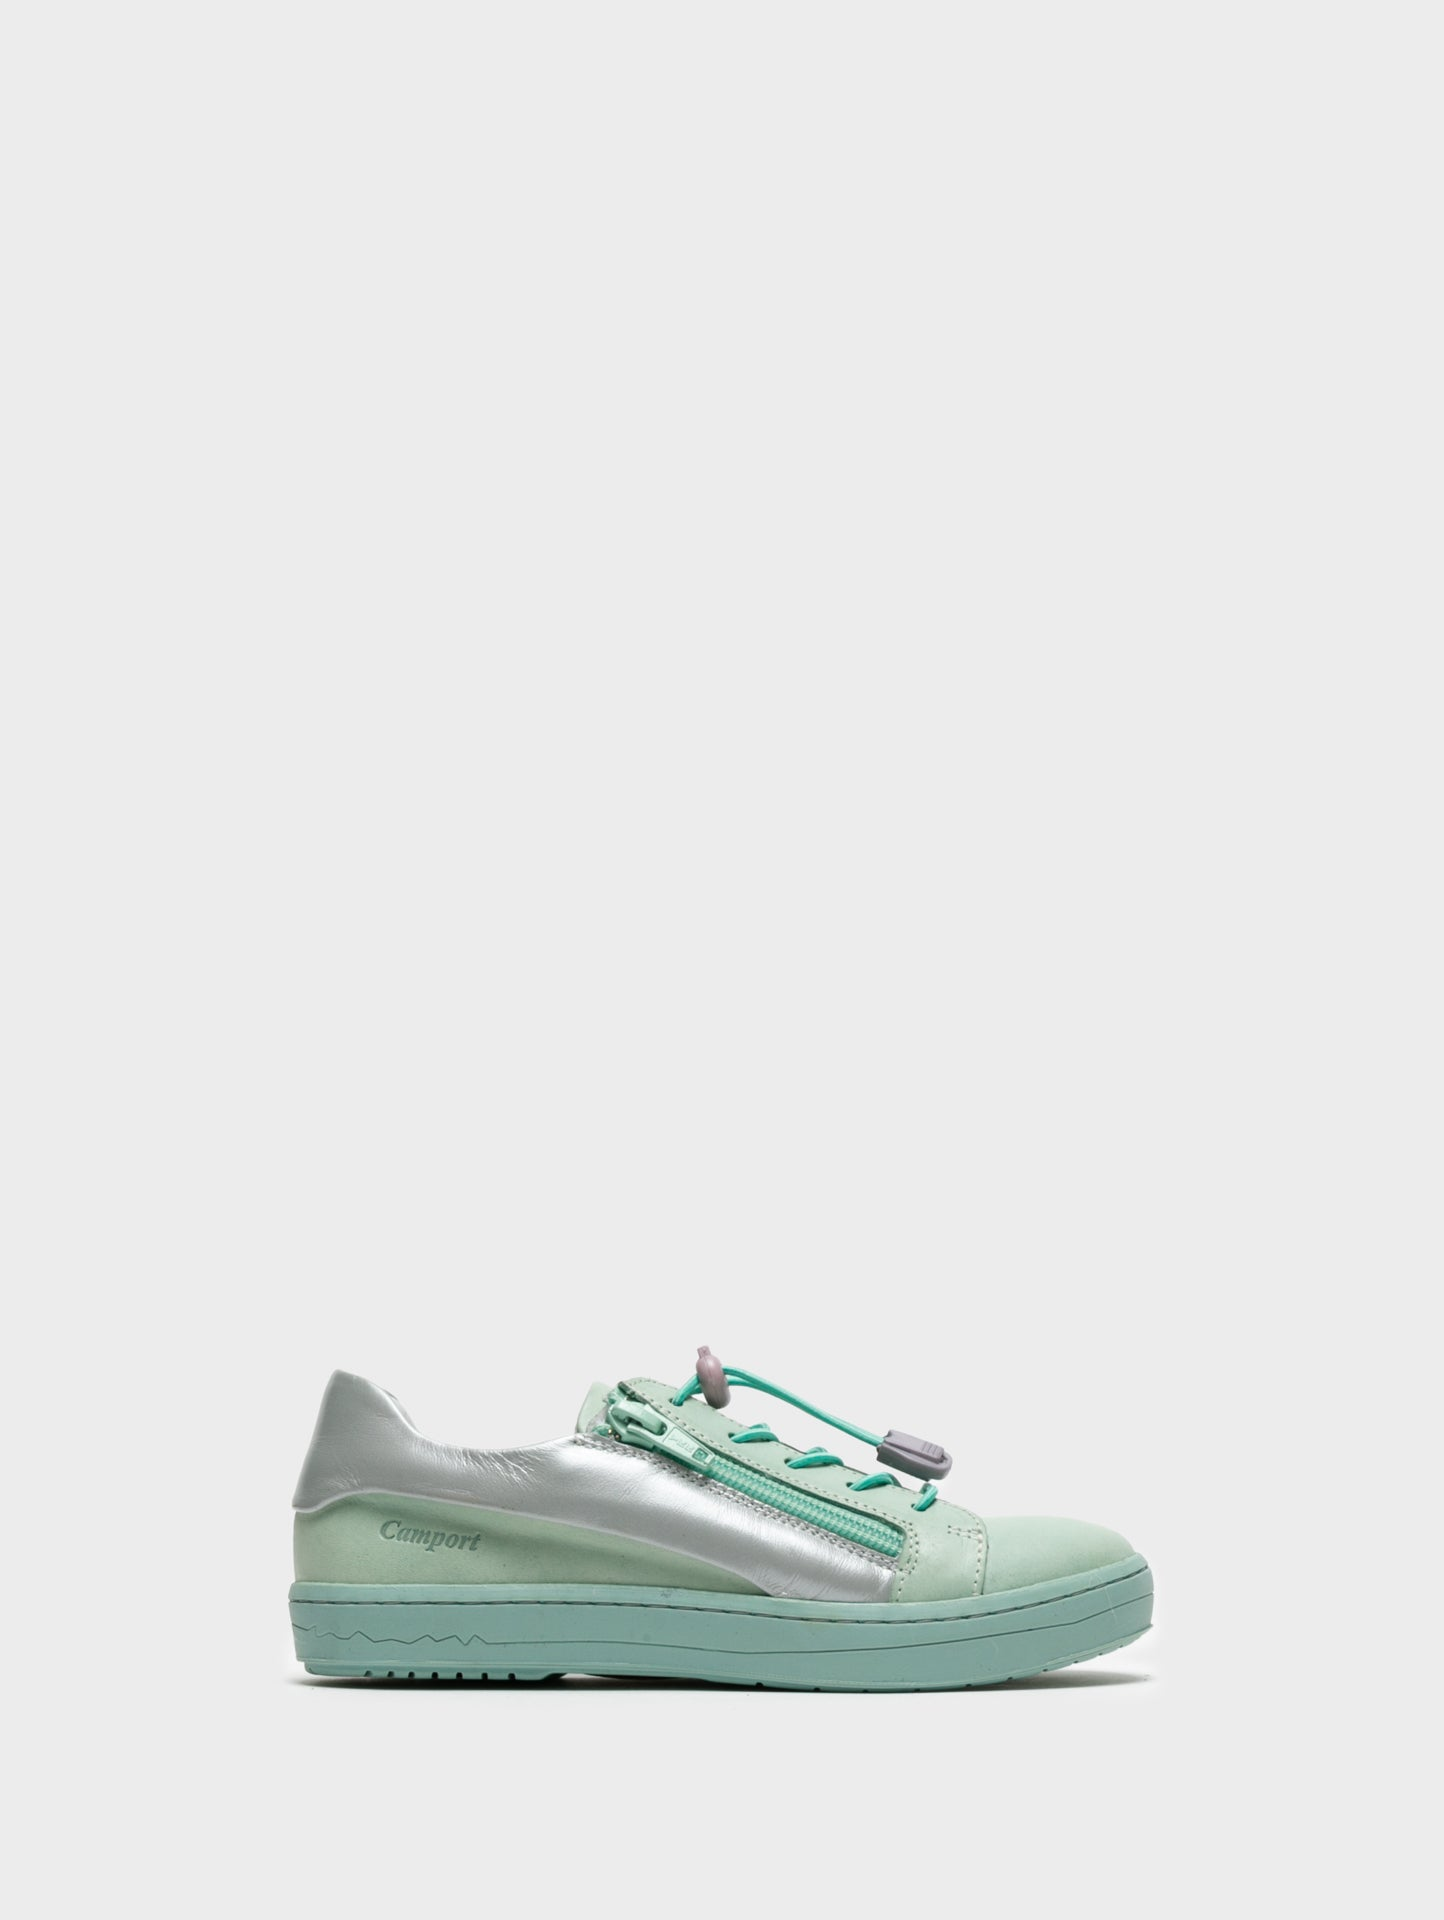 Camport Low-Top-Sneakers in Aquamarin Blau